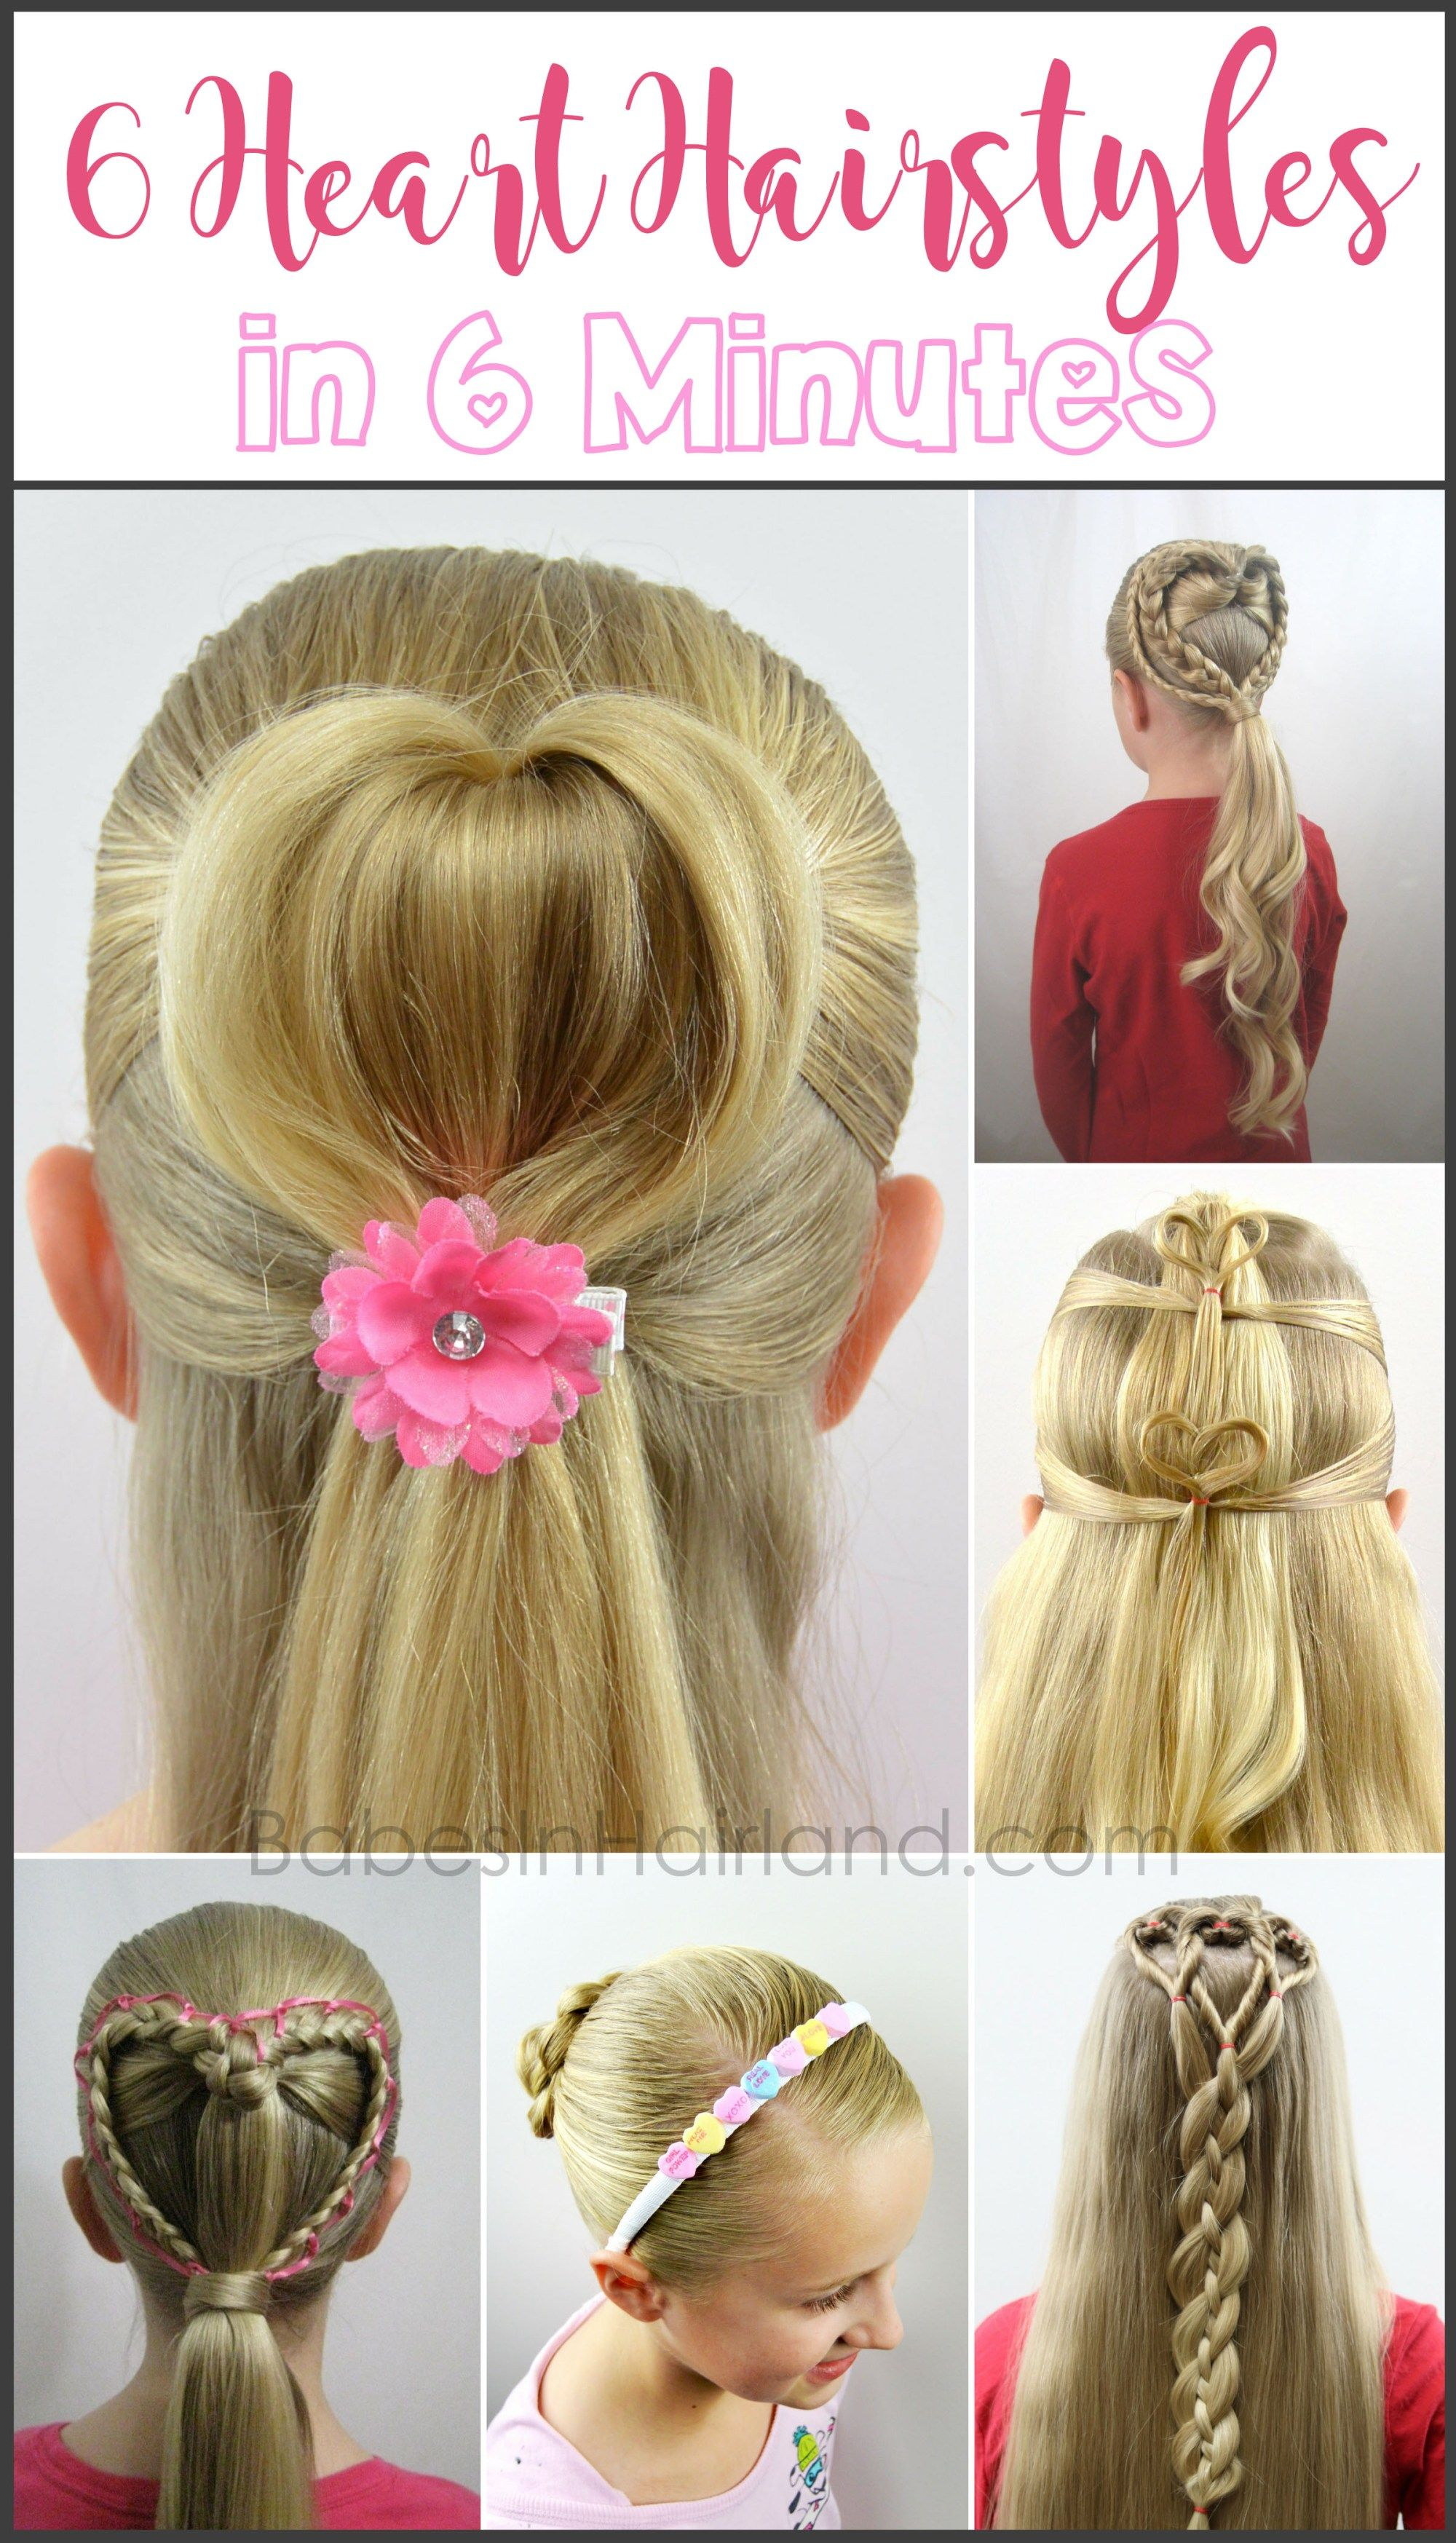 6 Heart Hairstyles in 6 Minutes | Valentine's Day Hairstyles